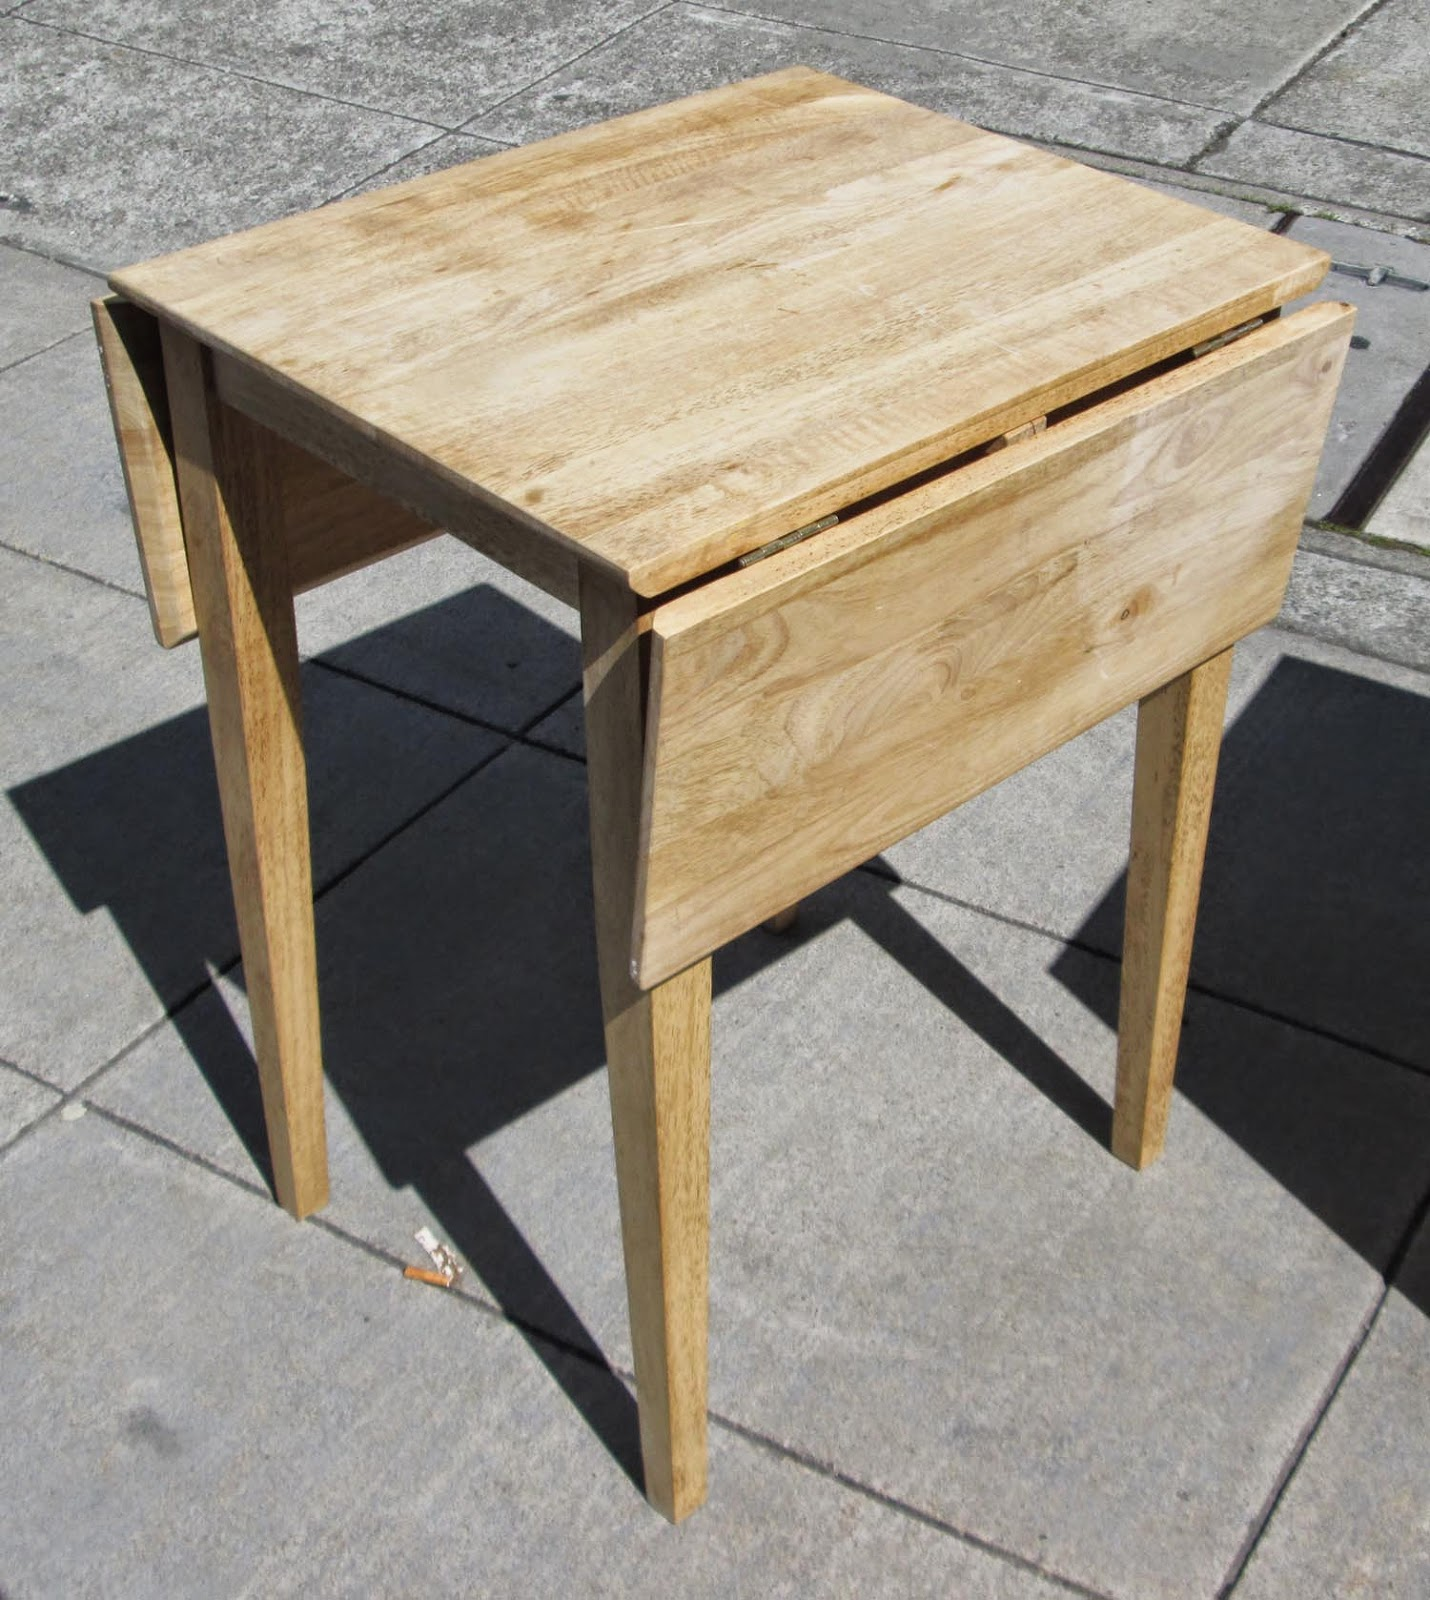 UHURU FURNITURE & COLLECTIBLES: SOLD Small Drop Leaf Table ...